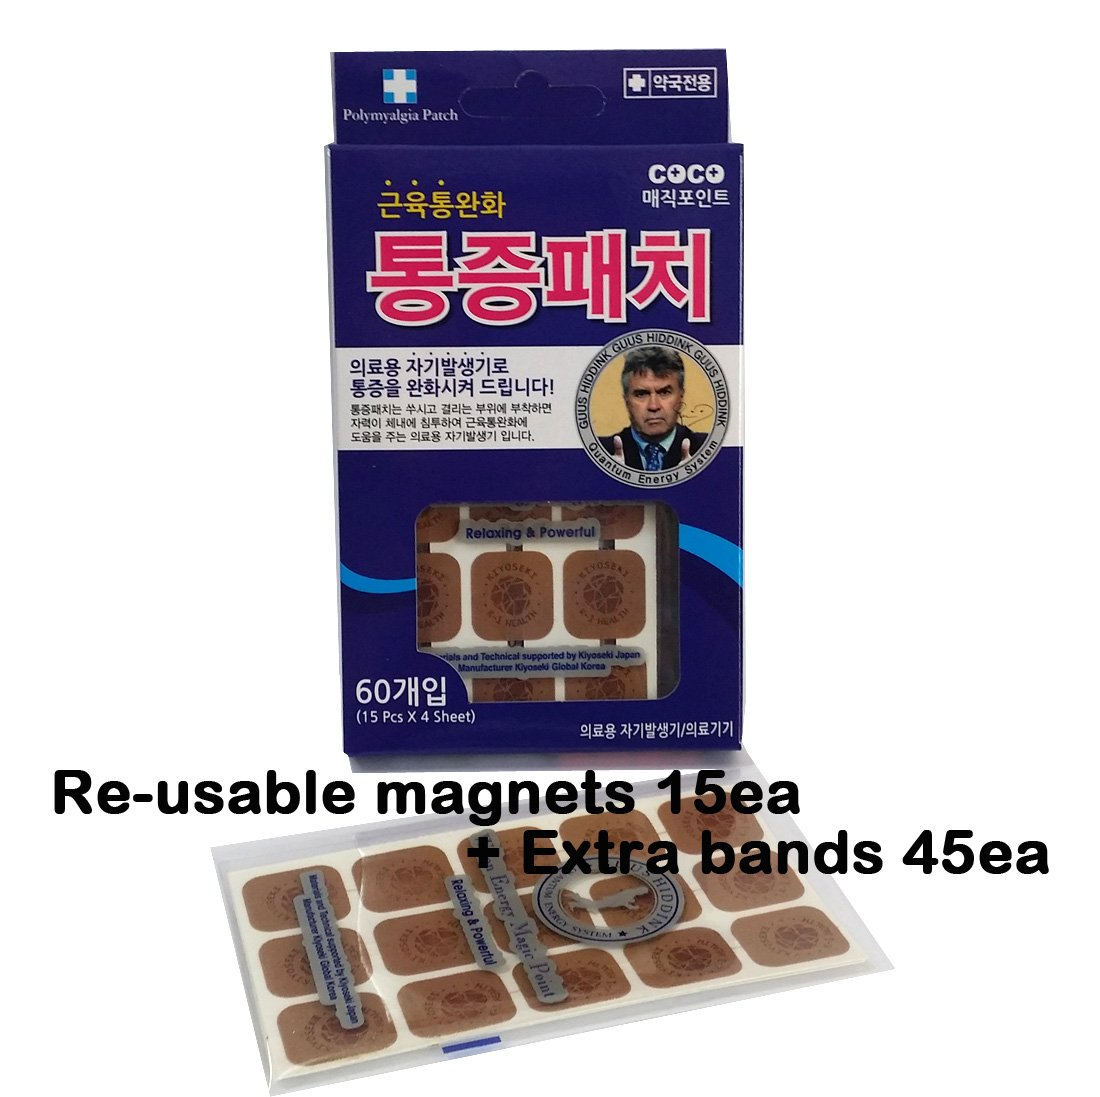 W-Ion Magic Point Magnetic Patches Relief gaus 500 Pain Outstanding Plasters Free Shipping Cheap Bargain Gift